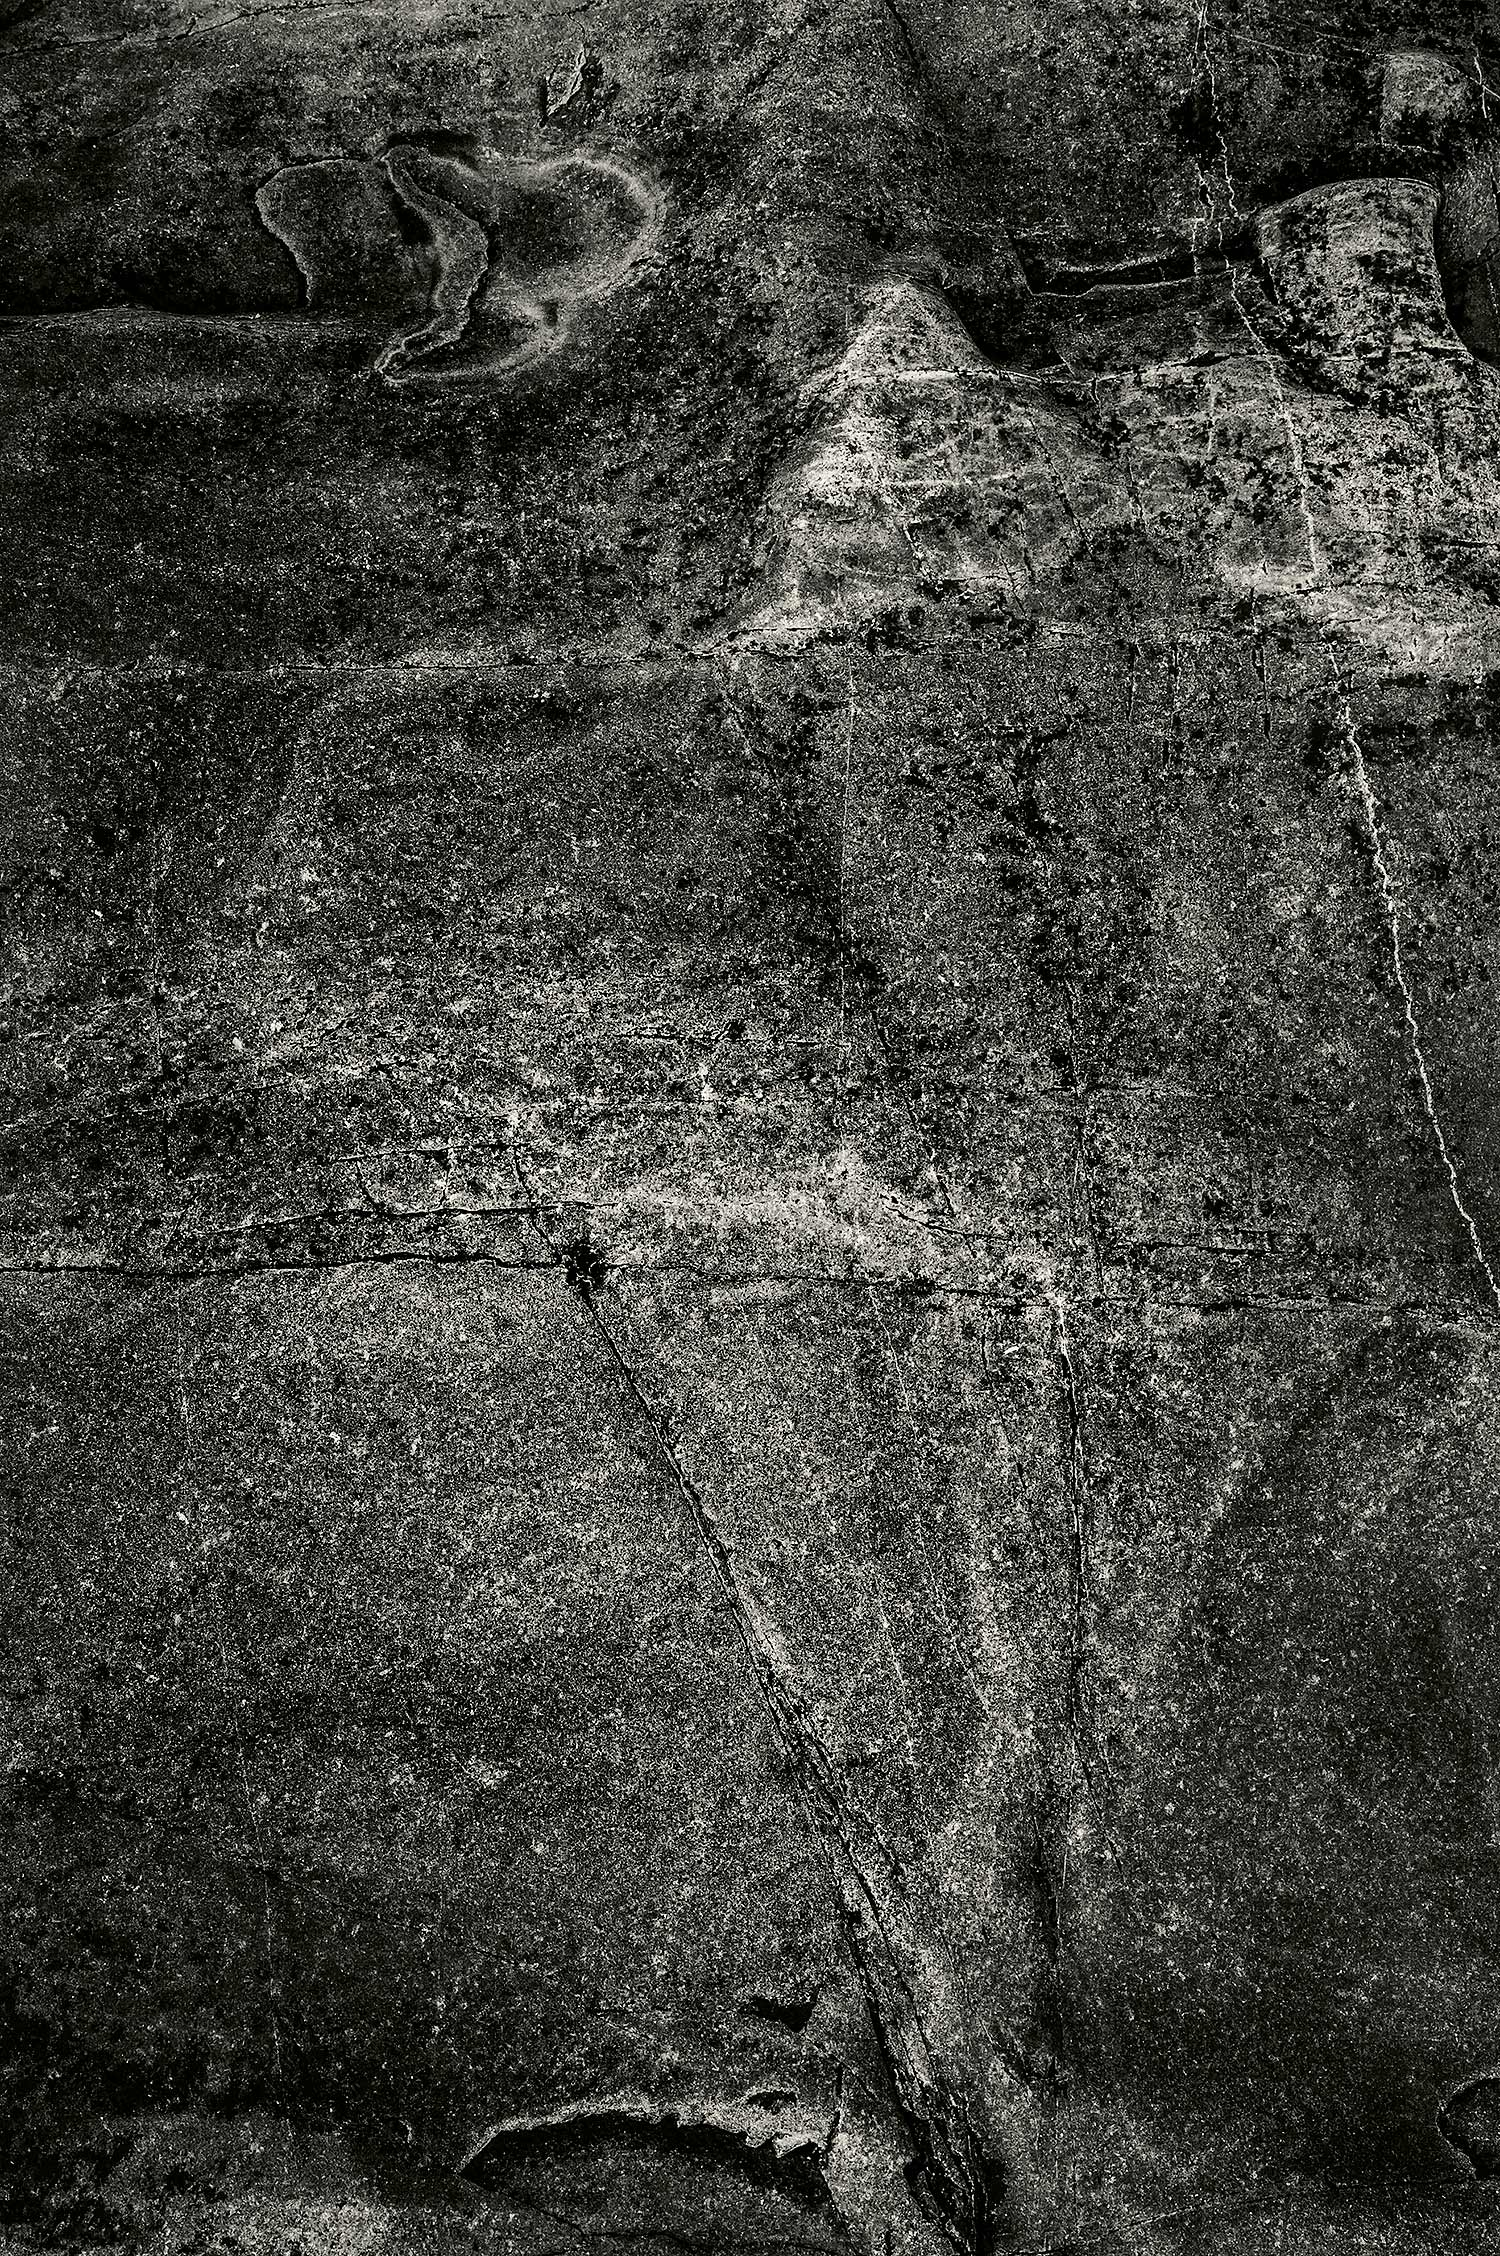 Rock, Dorr Point, Acadia, 2013